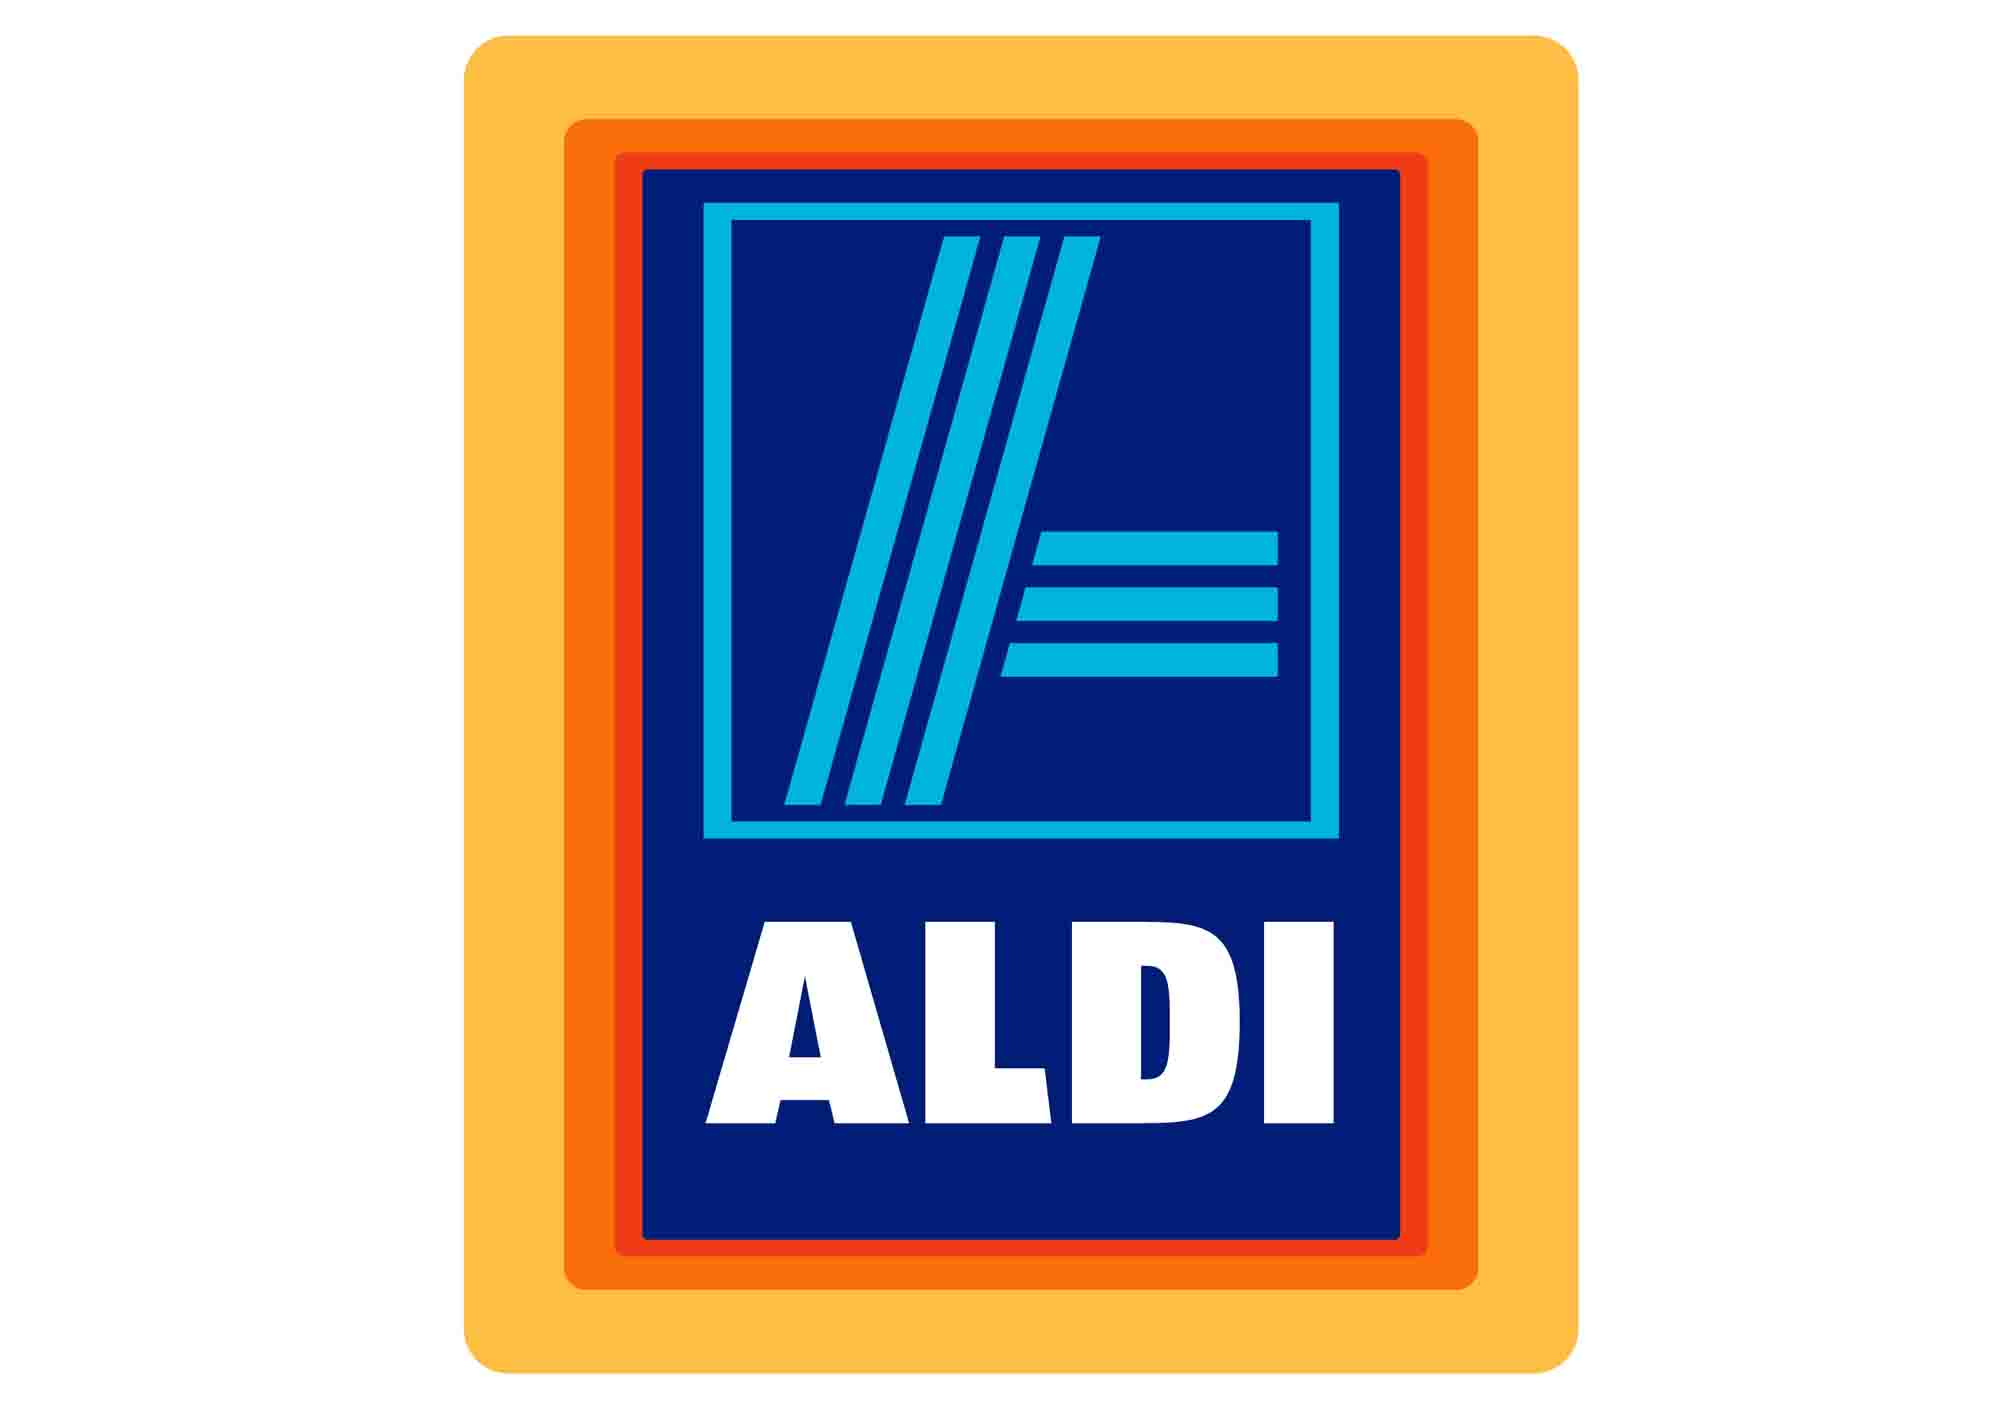 Video production liverpool - aldi